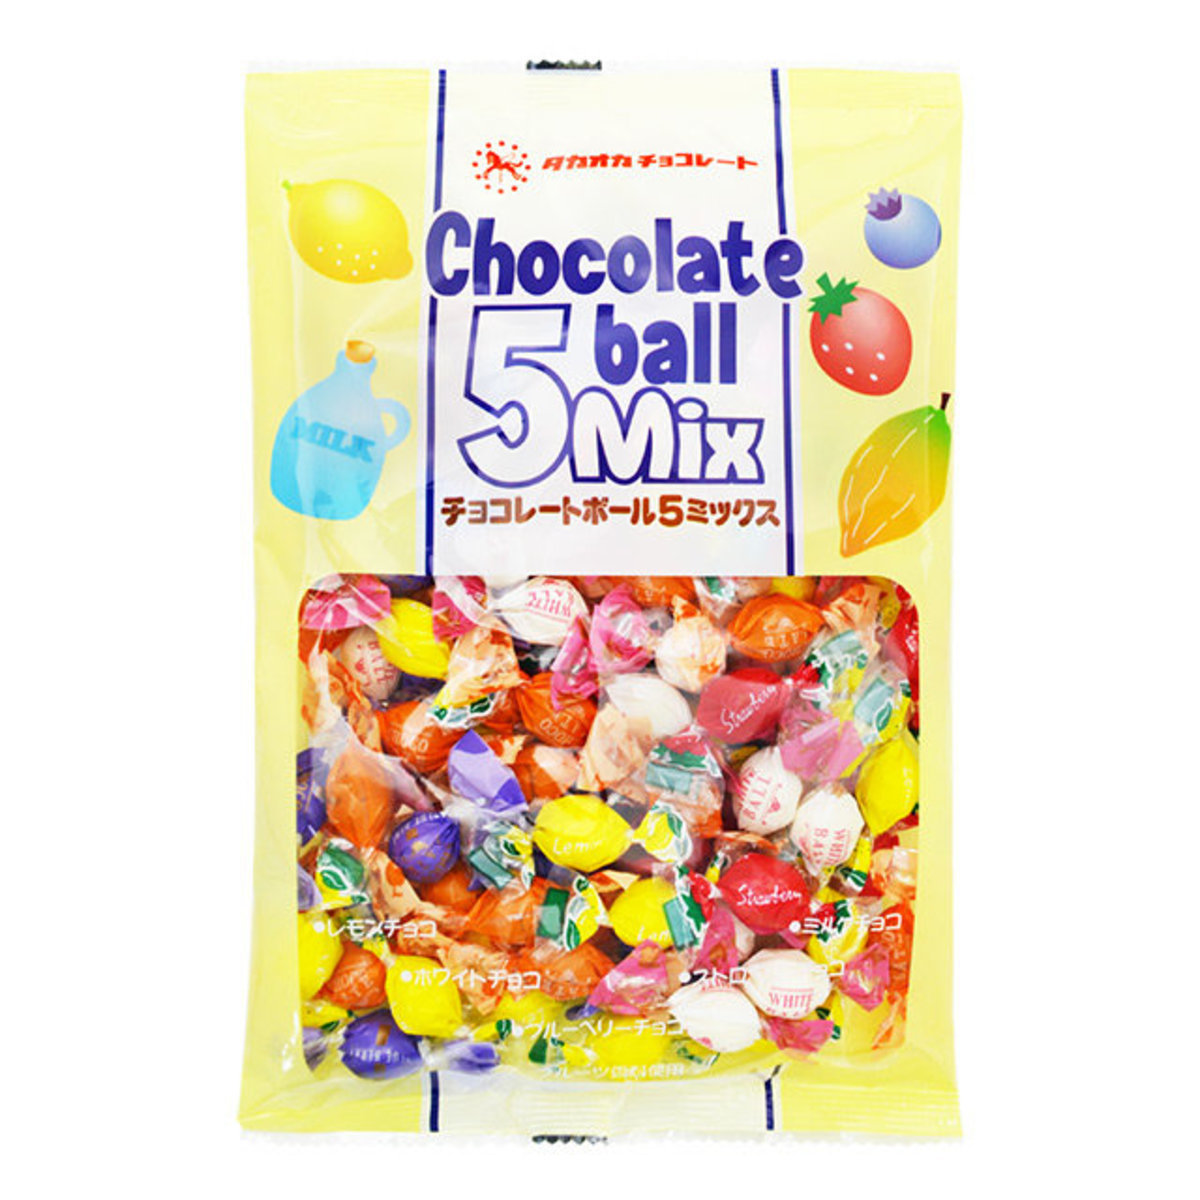 Chocolate balls 5MIX 155g (parallel import)